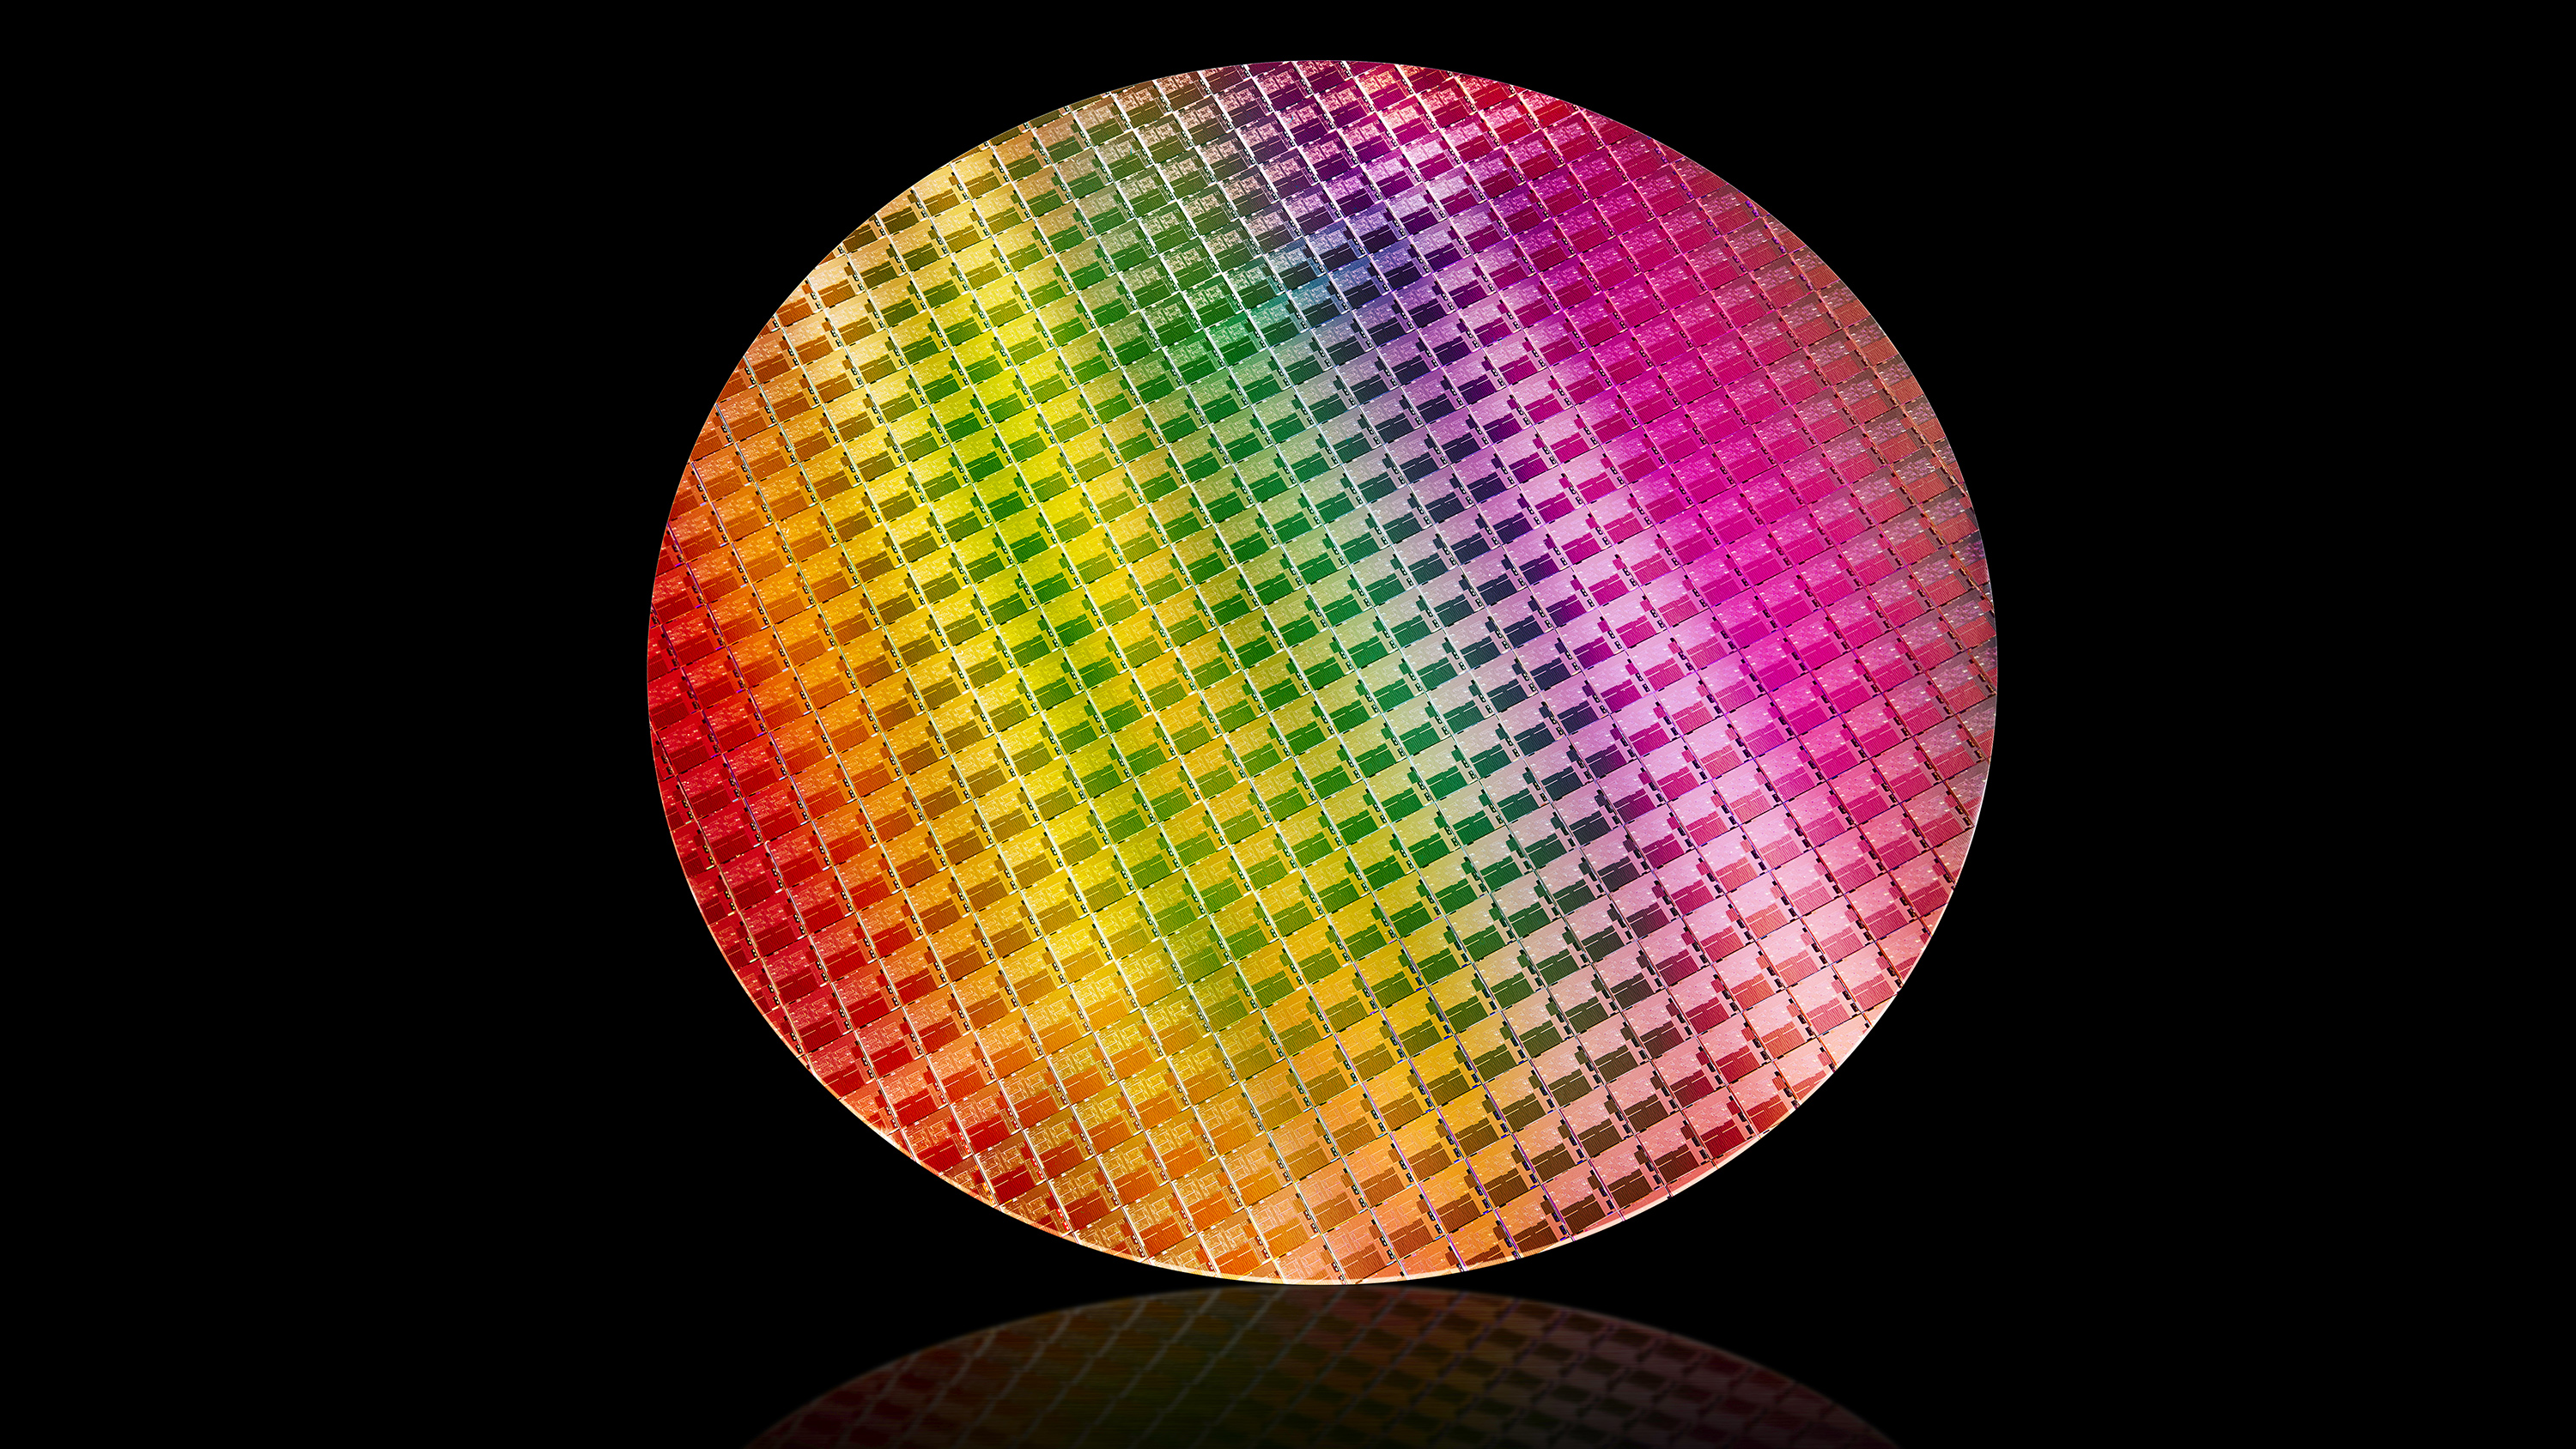 Intel launches first 10th Gen Ice Lake CPUs with 10nm